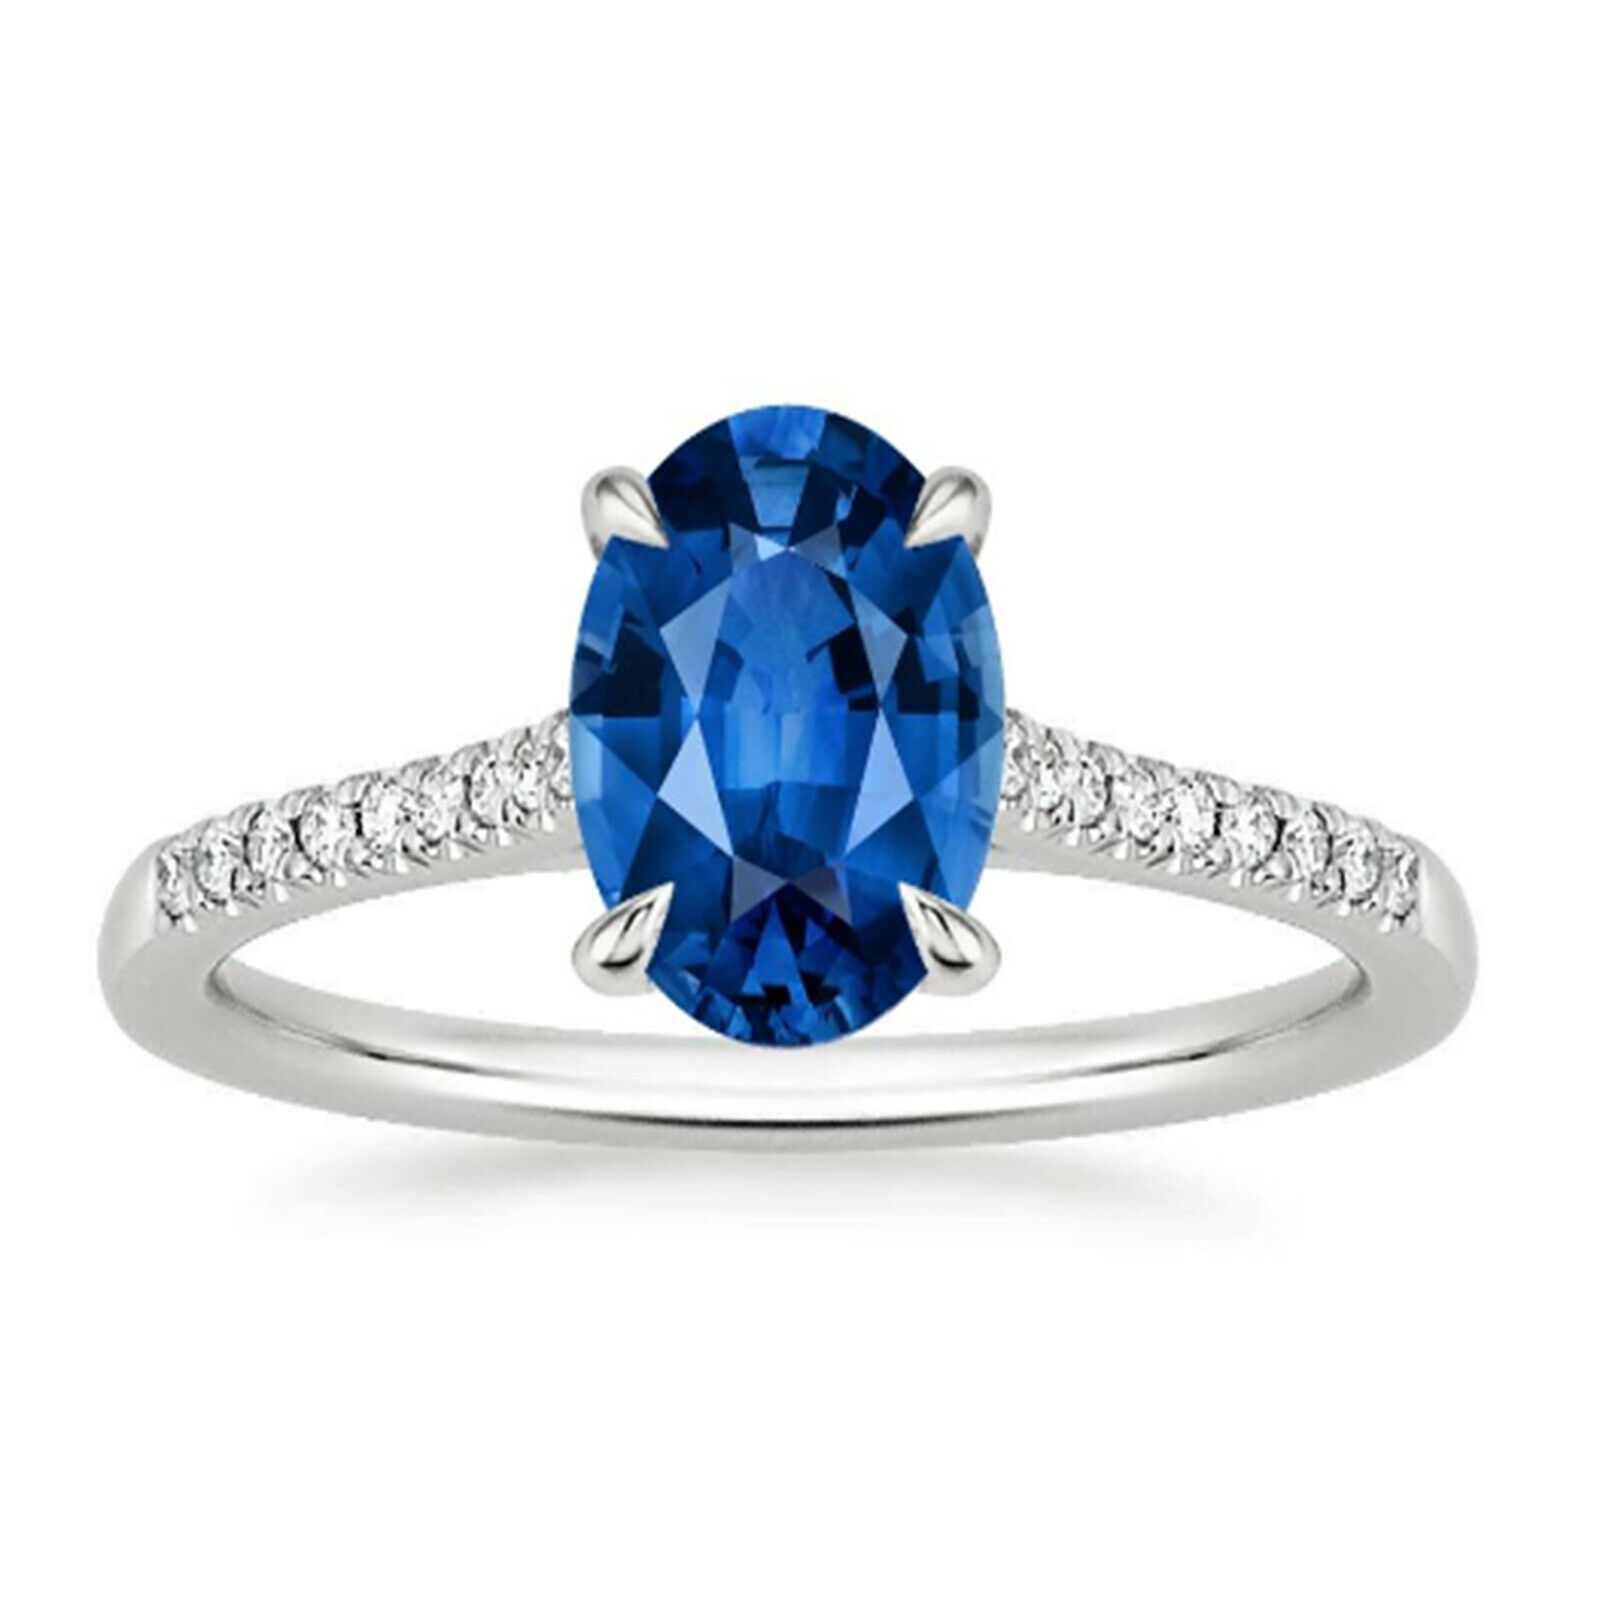 1.68 Ct Oval Cut Sapphire 14K White gold Natural Diamond Wedding Ring Size 8 6